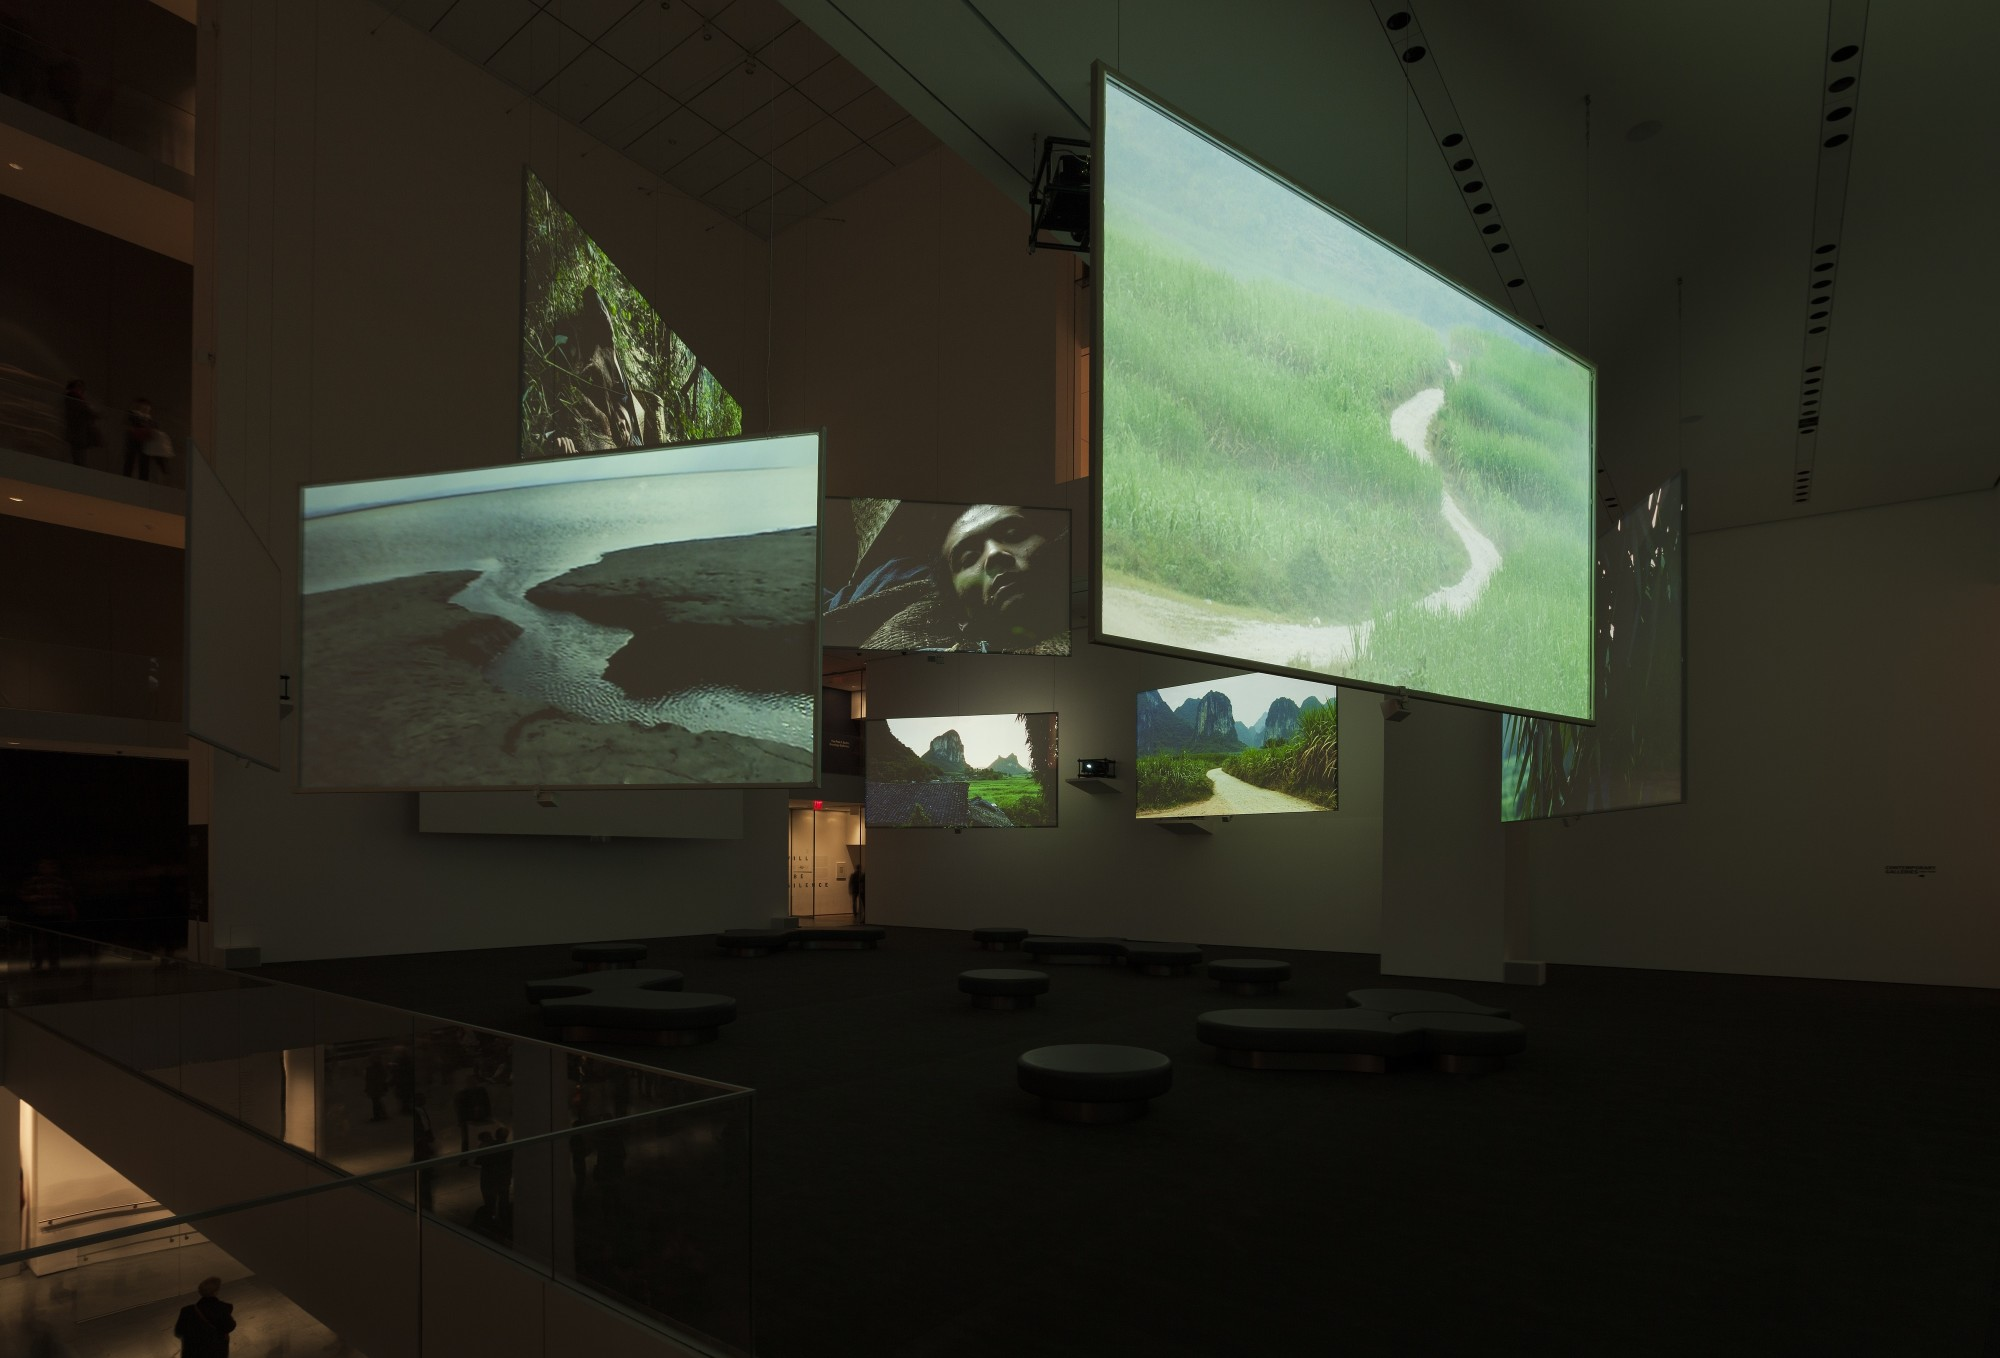 Isaac Julien: Ten Thousand Waves. The Museum of Modern Art (MoMA), New York, 2013-14  49'41'', nine-screen installation, 35mm film transferred to digital, colour, 9.2 sound